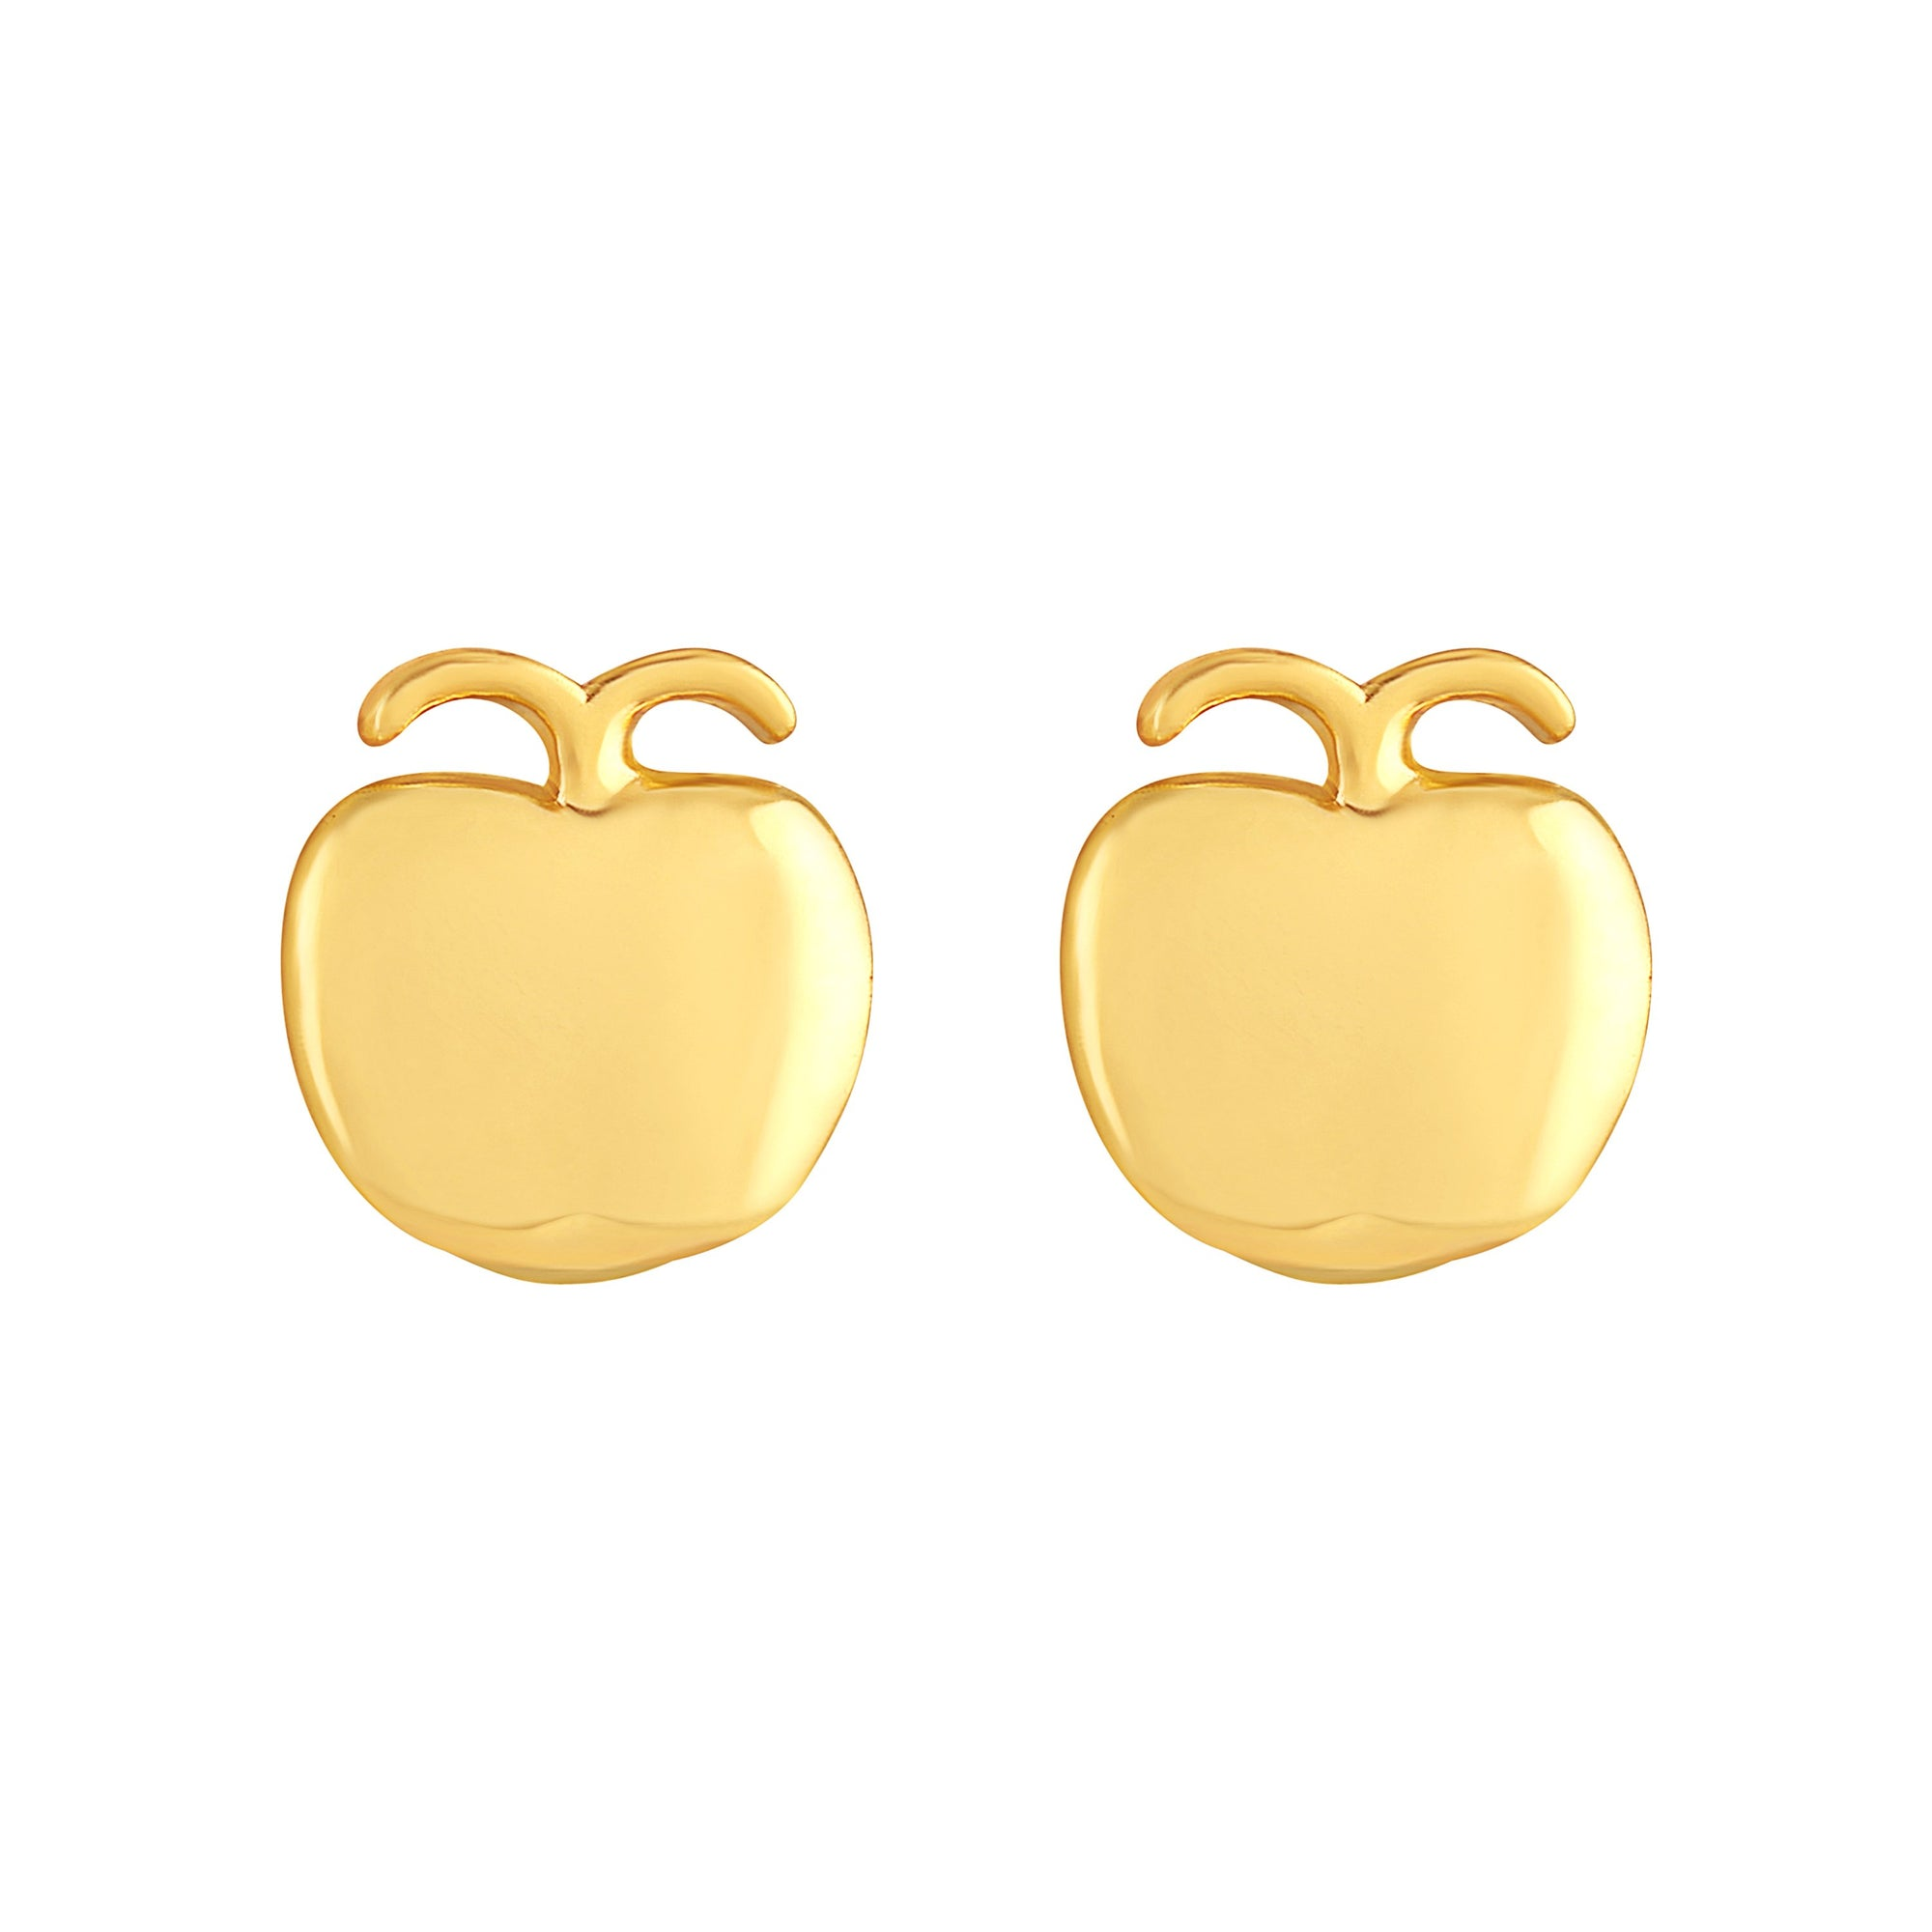 Asmitta Jewellery Bali Gold Brass Hoop Earring  -EB144